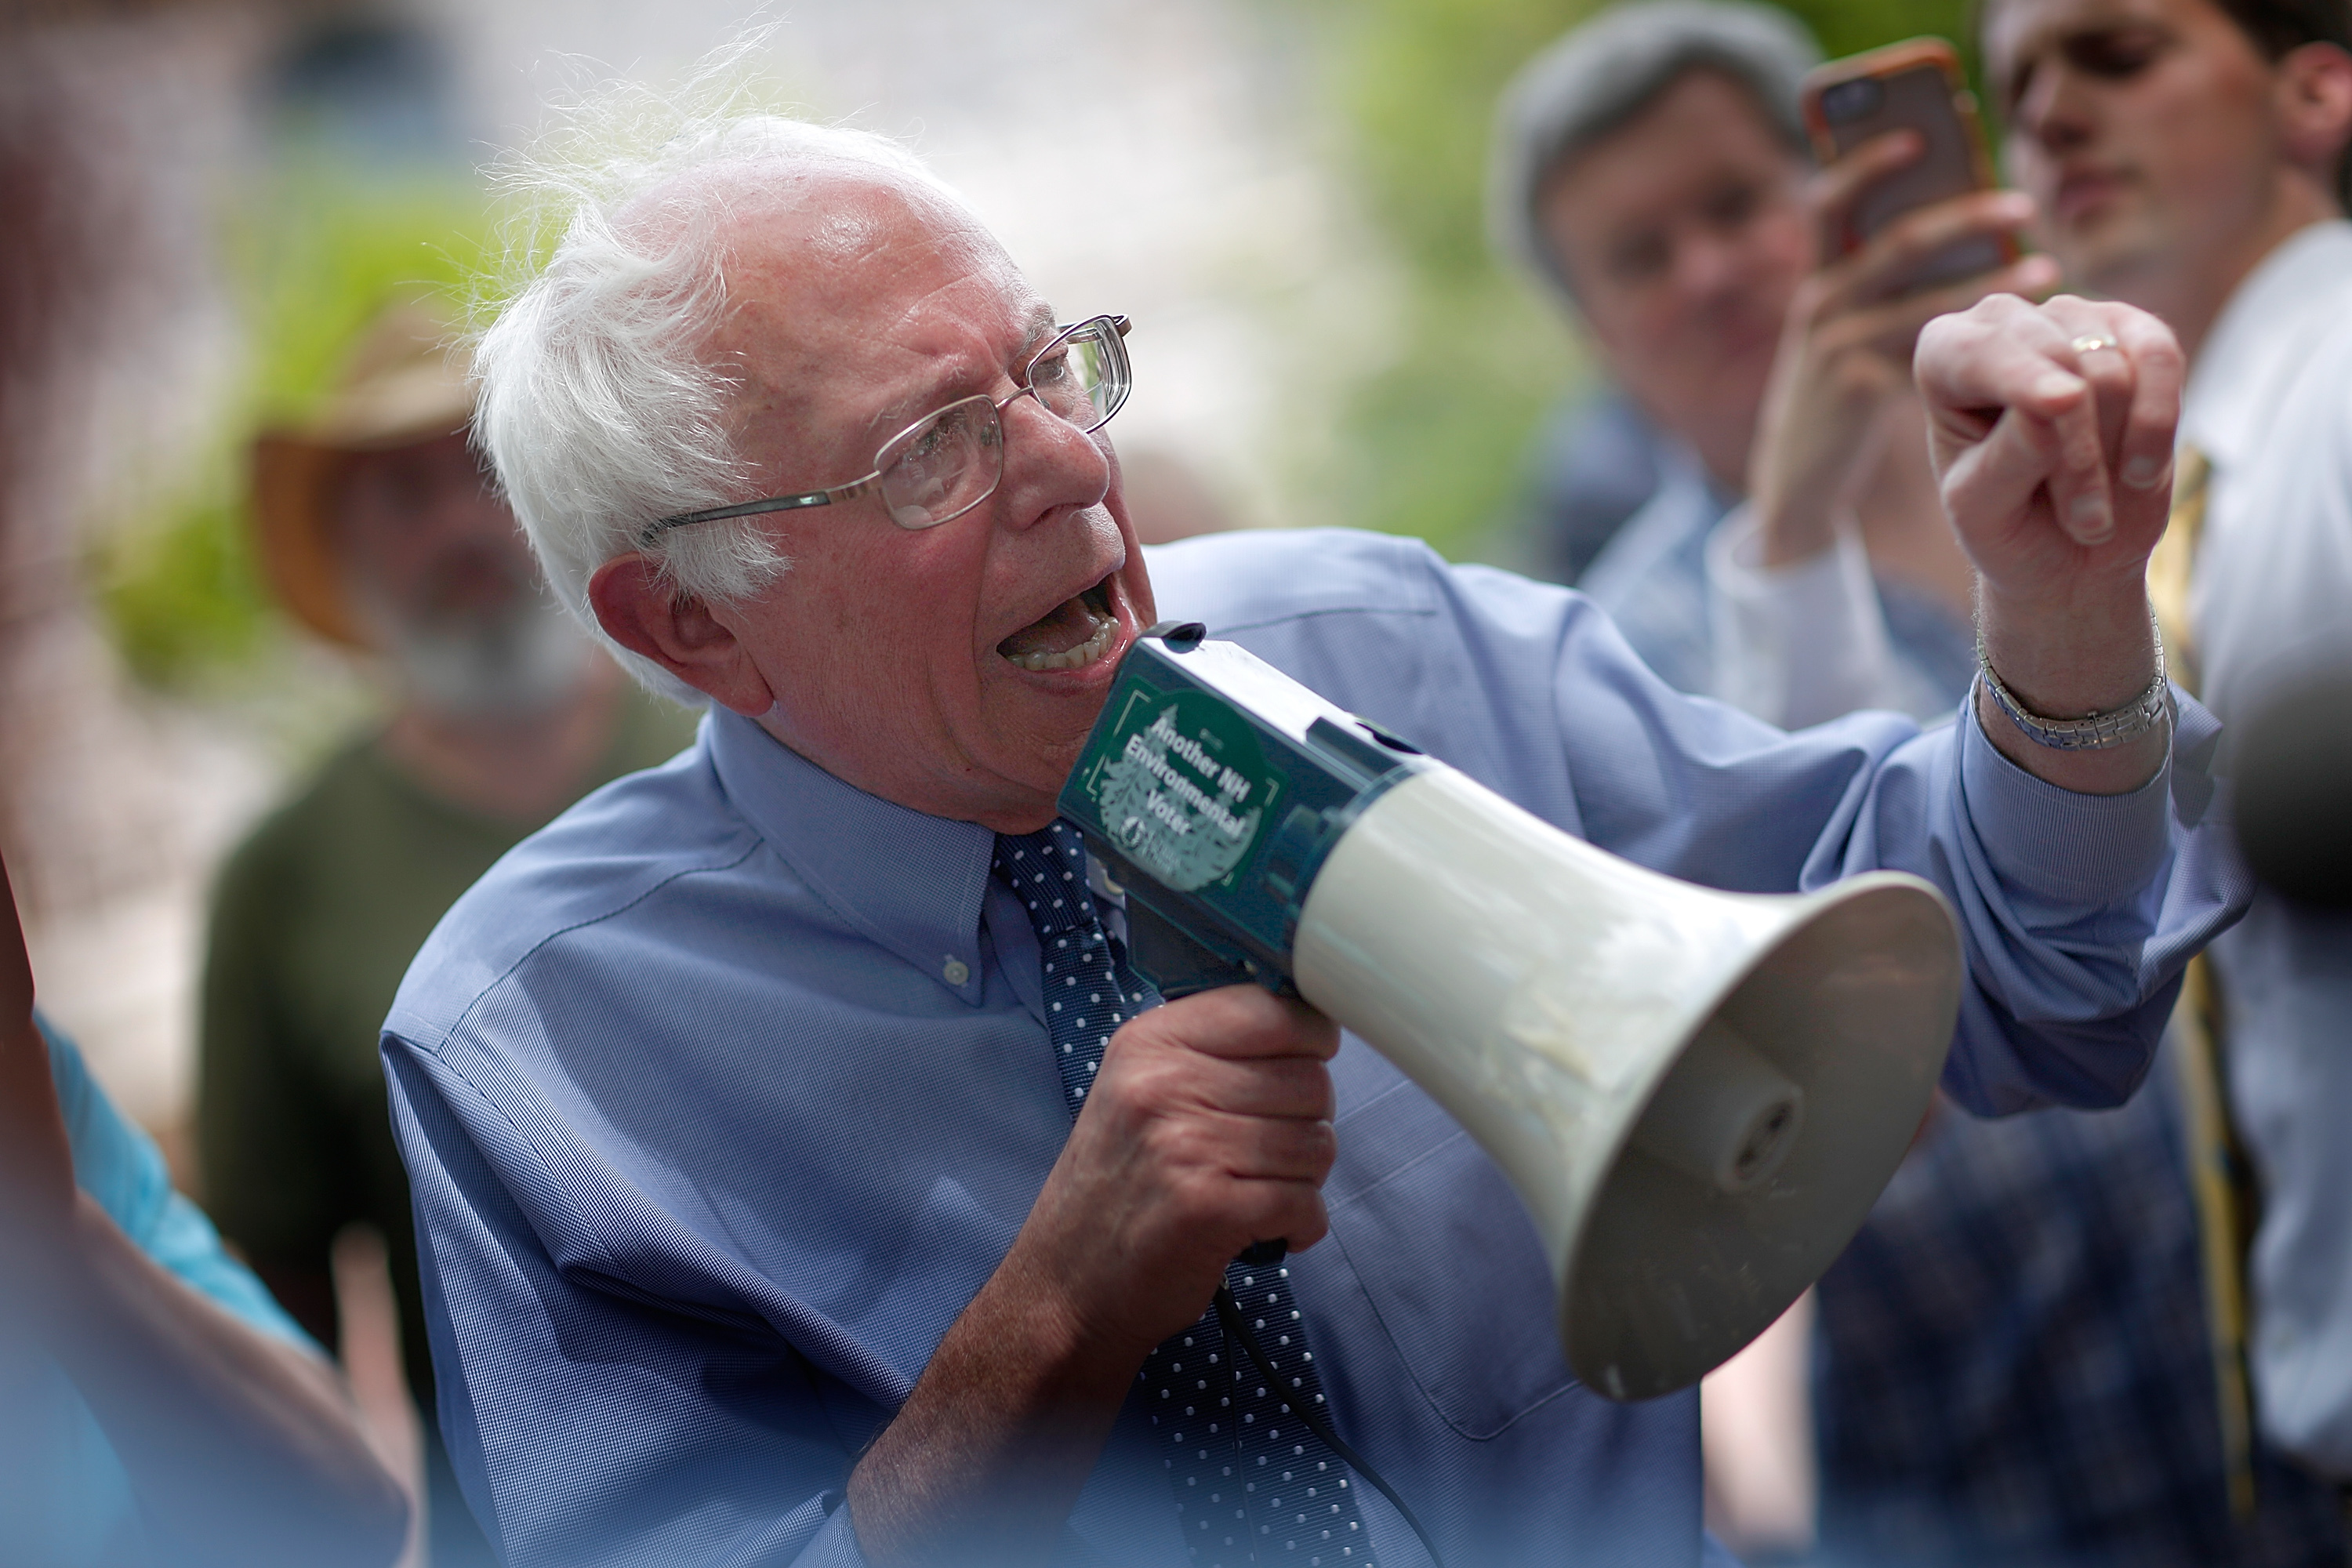 Democratic presidential candidate Sen. Bernie Sanders (I-VT) speaks to an overflow crowd through a megaphone after a campaign event at the New England College May 27, 2015 in Concord, N.H.